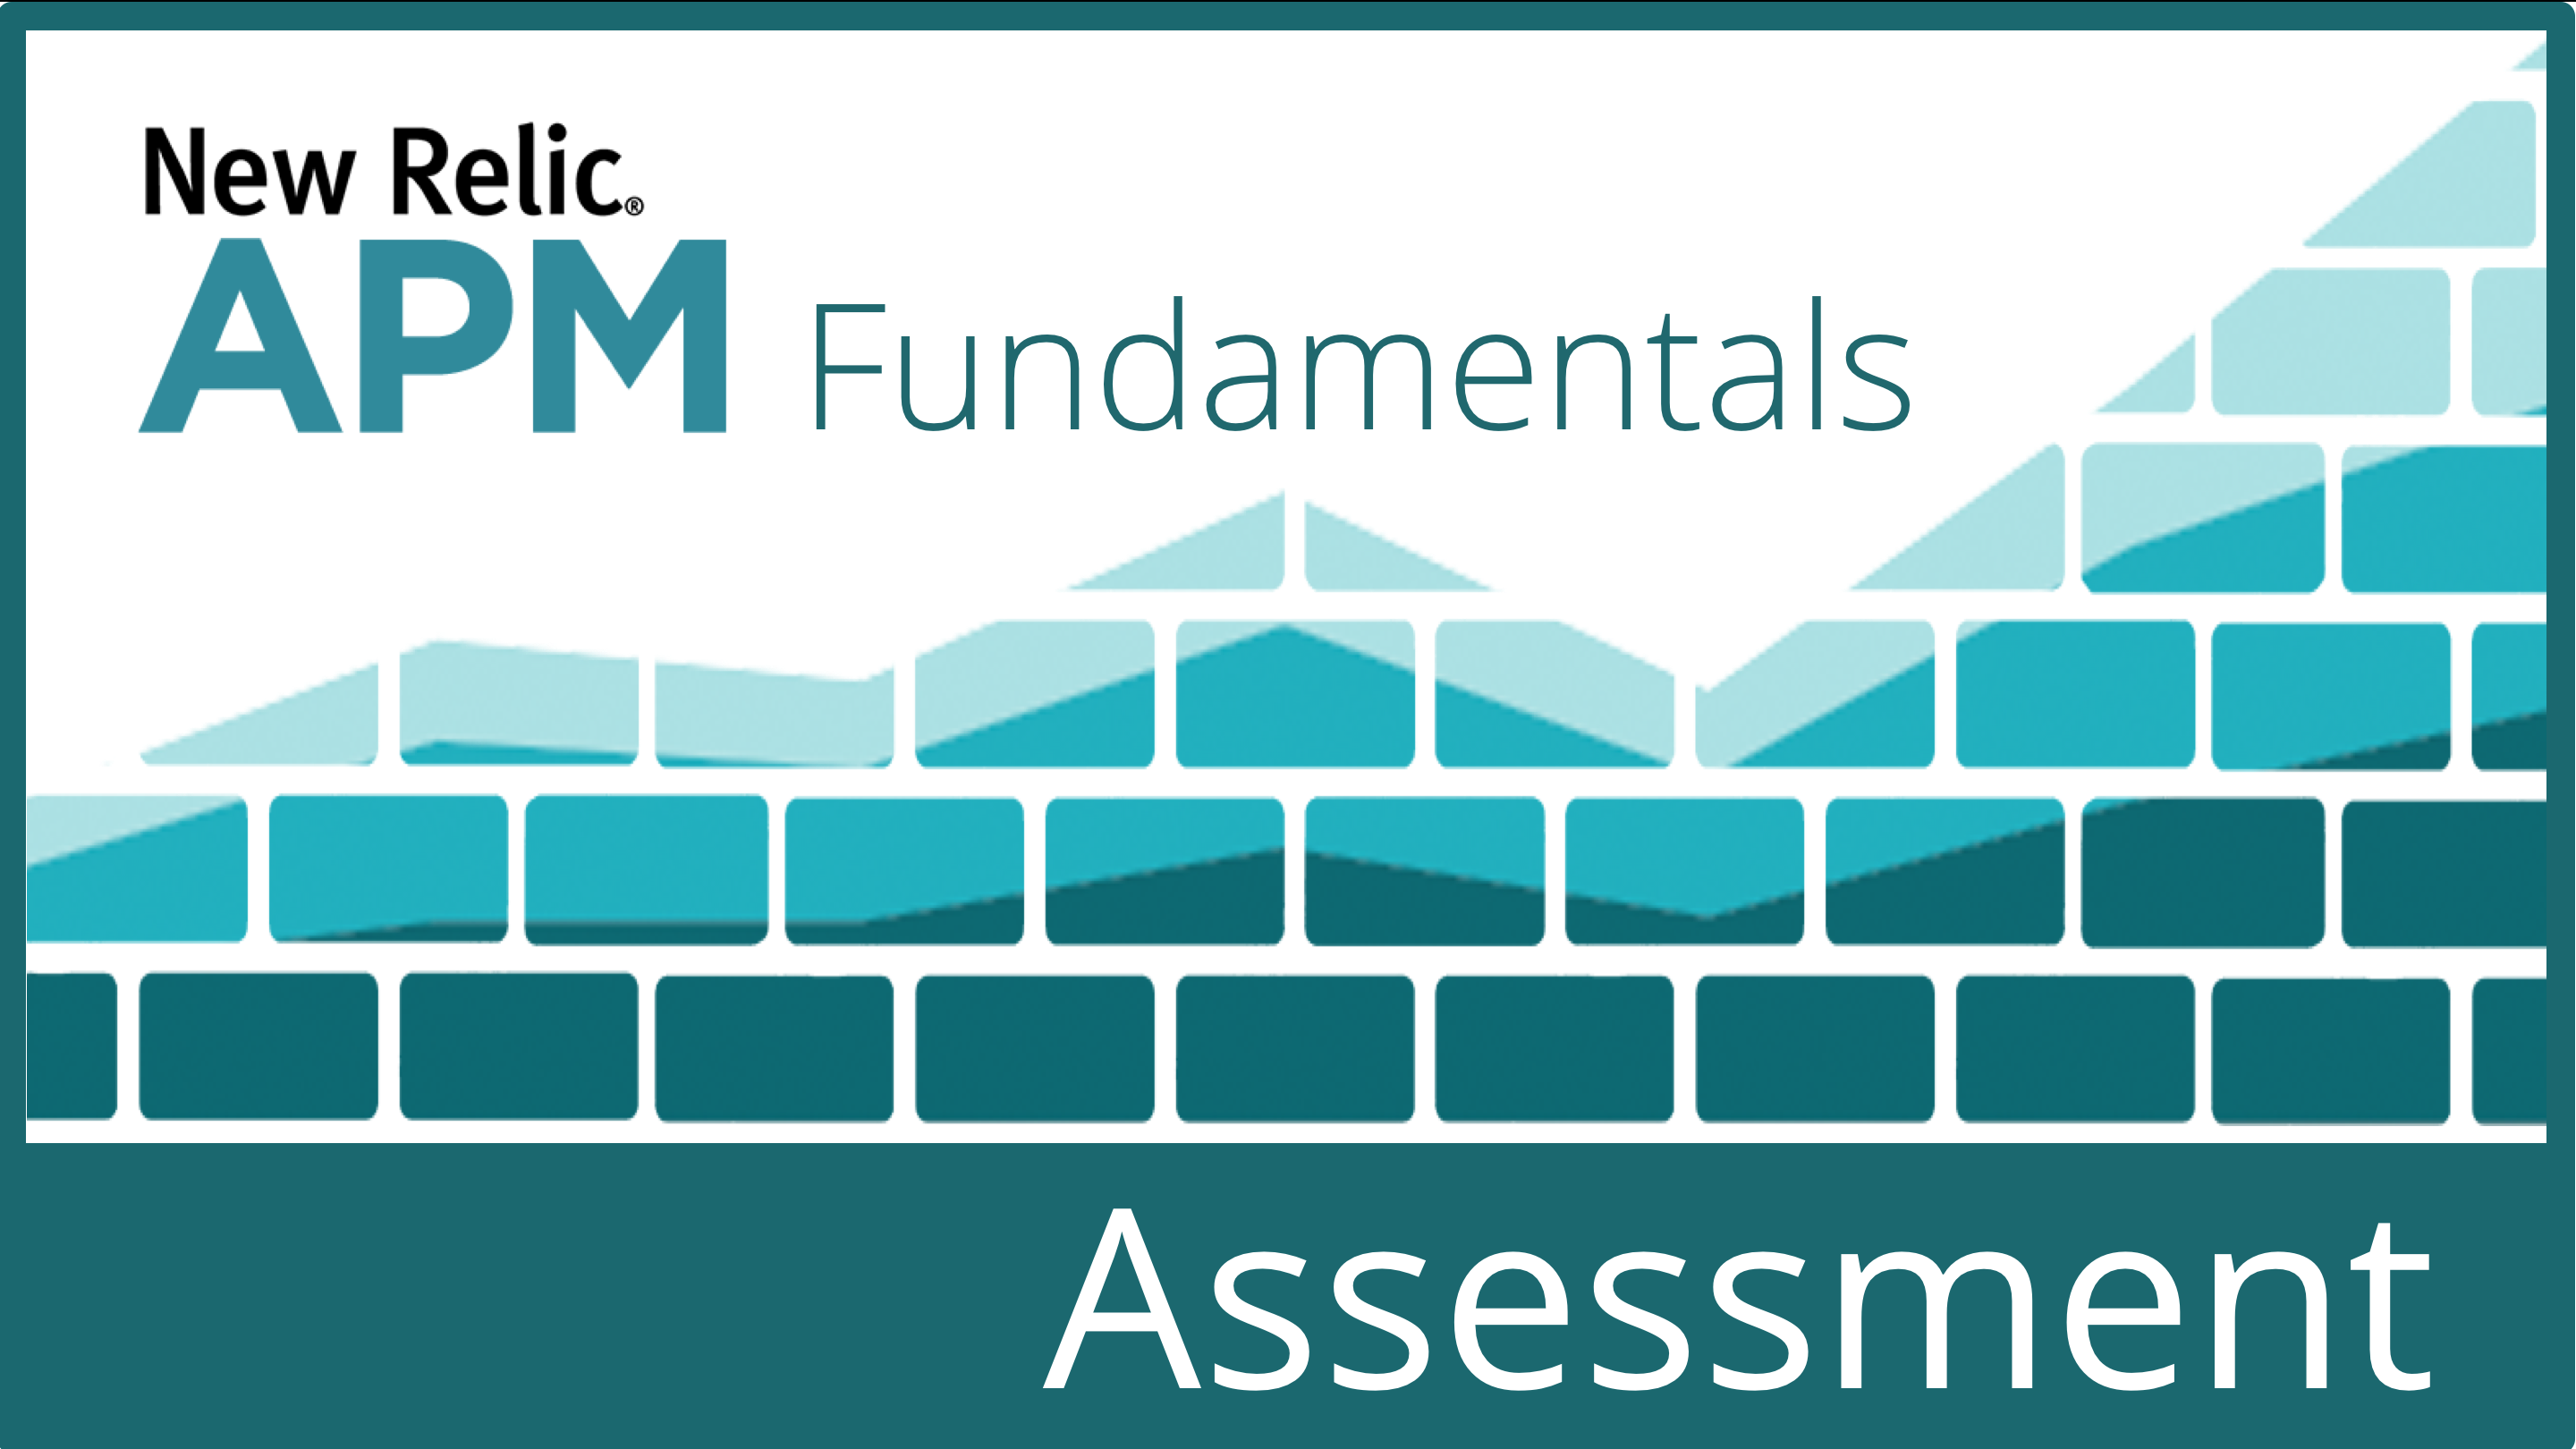 Certification Assessment: New Relic APM Fundamentals